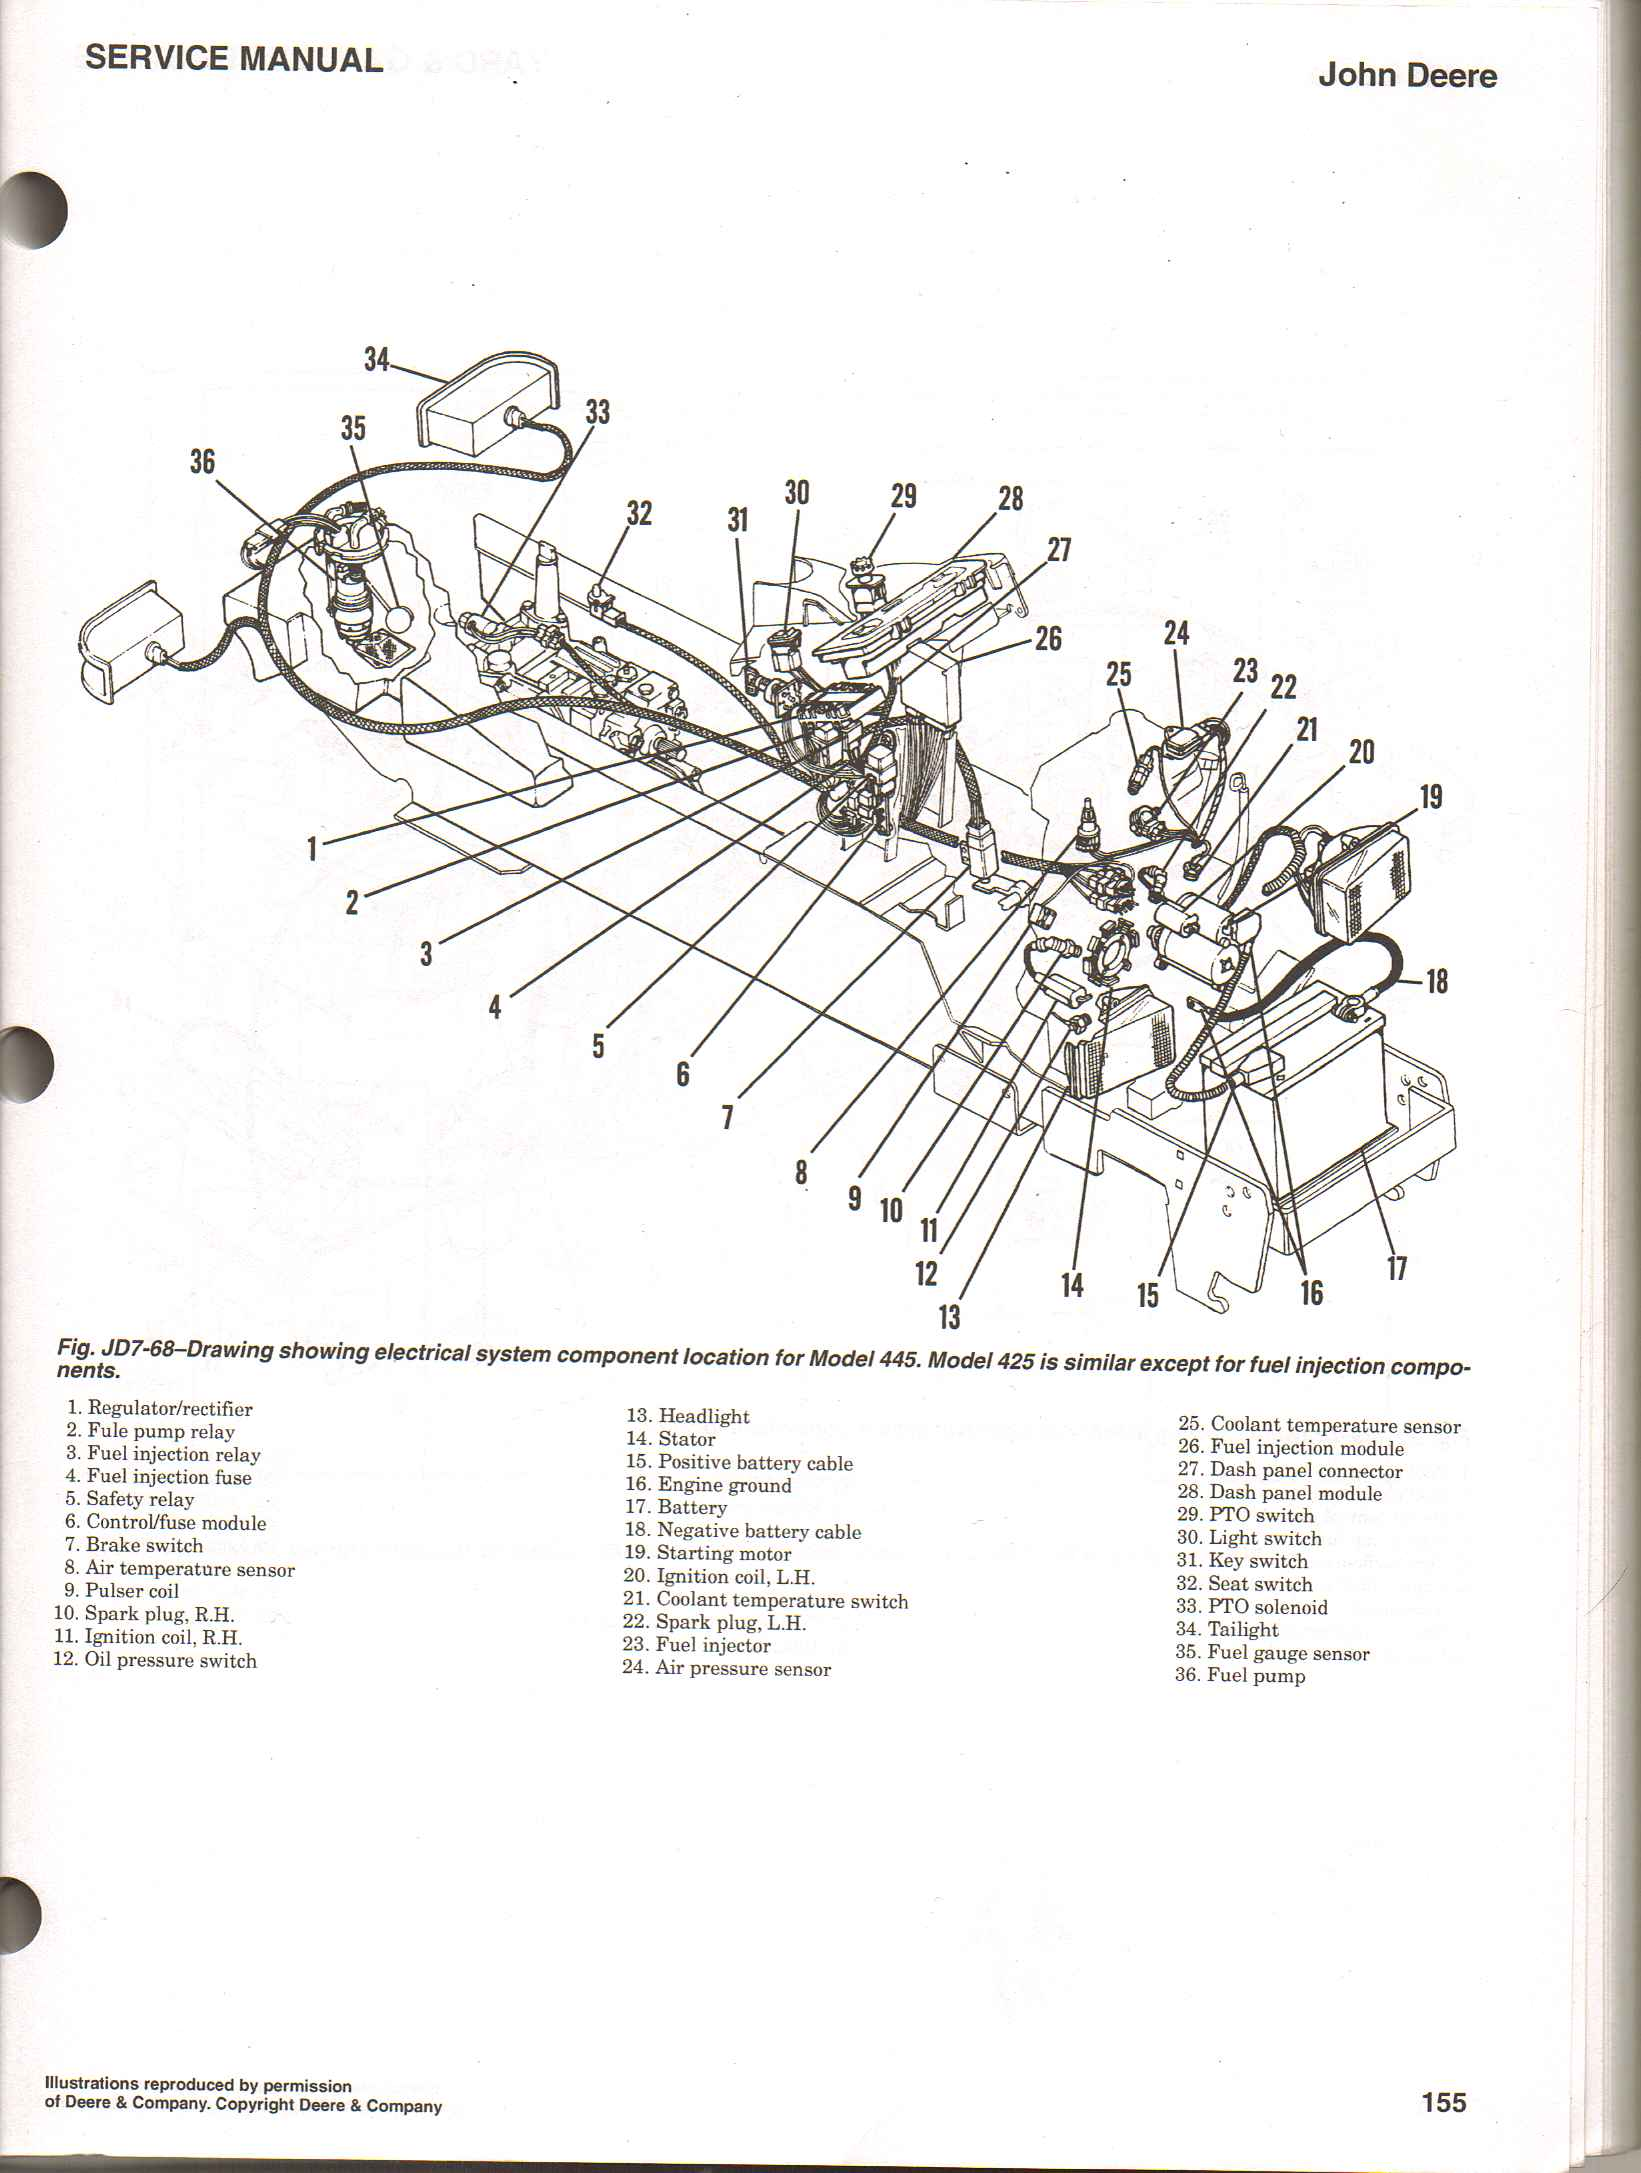 John Deere 425 Wiring Harness -Crank Power Window Switch Wiring Diagram |  Begeboy Wiring Diagram Source Begeboy Wiring Diagram Source